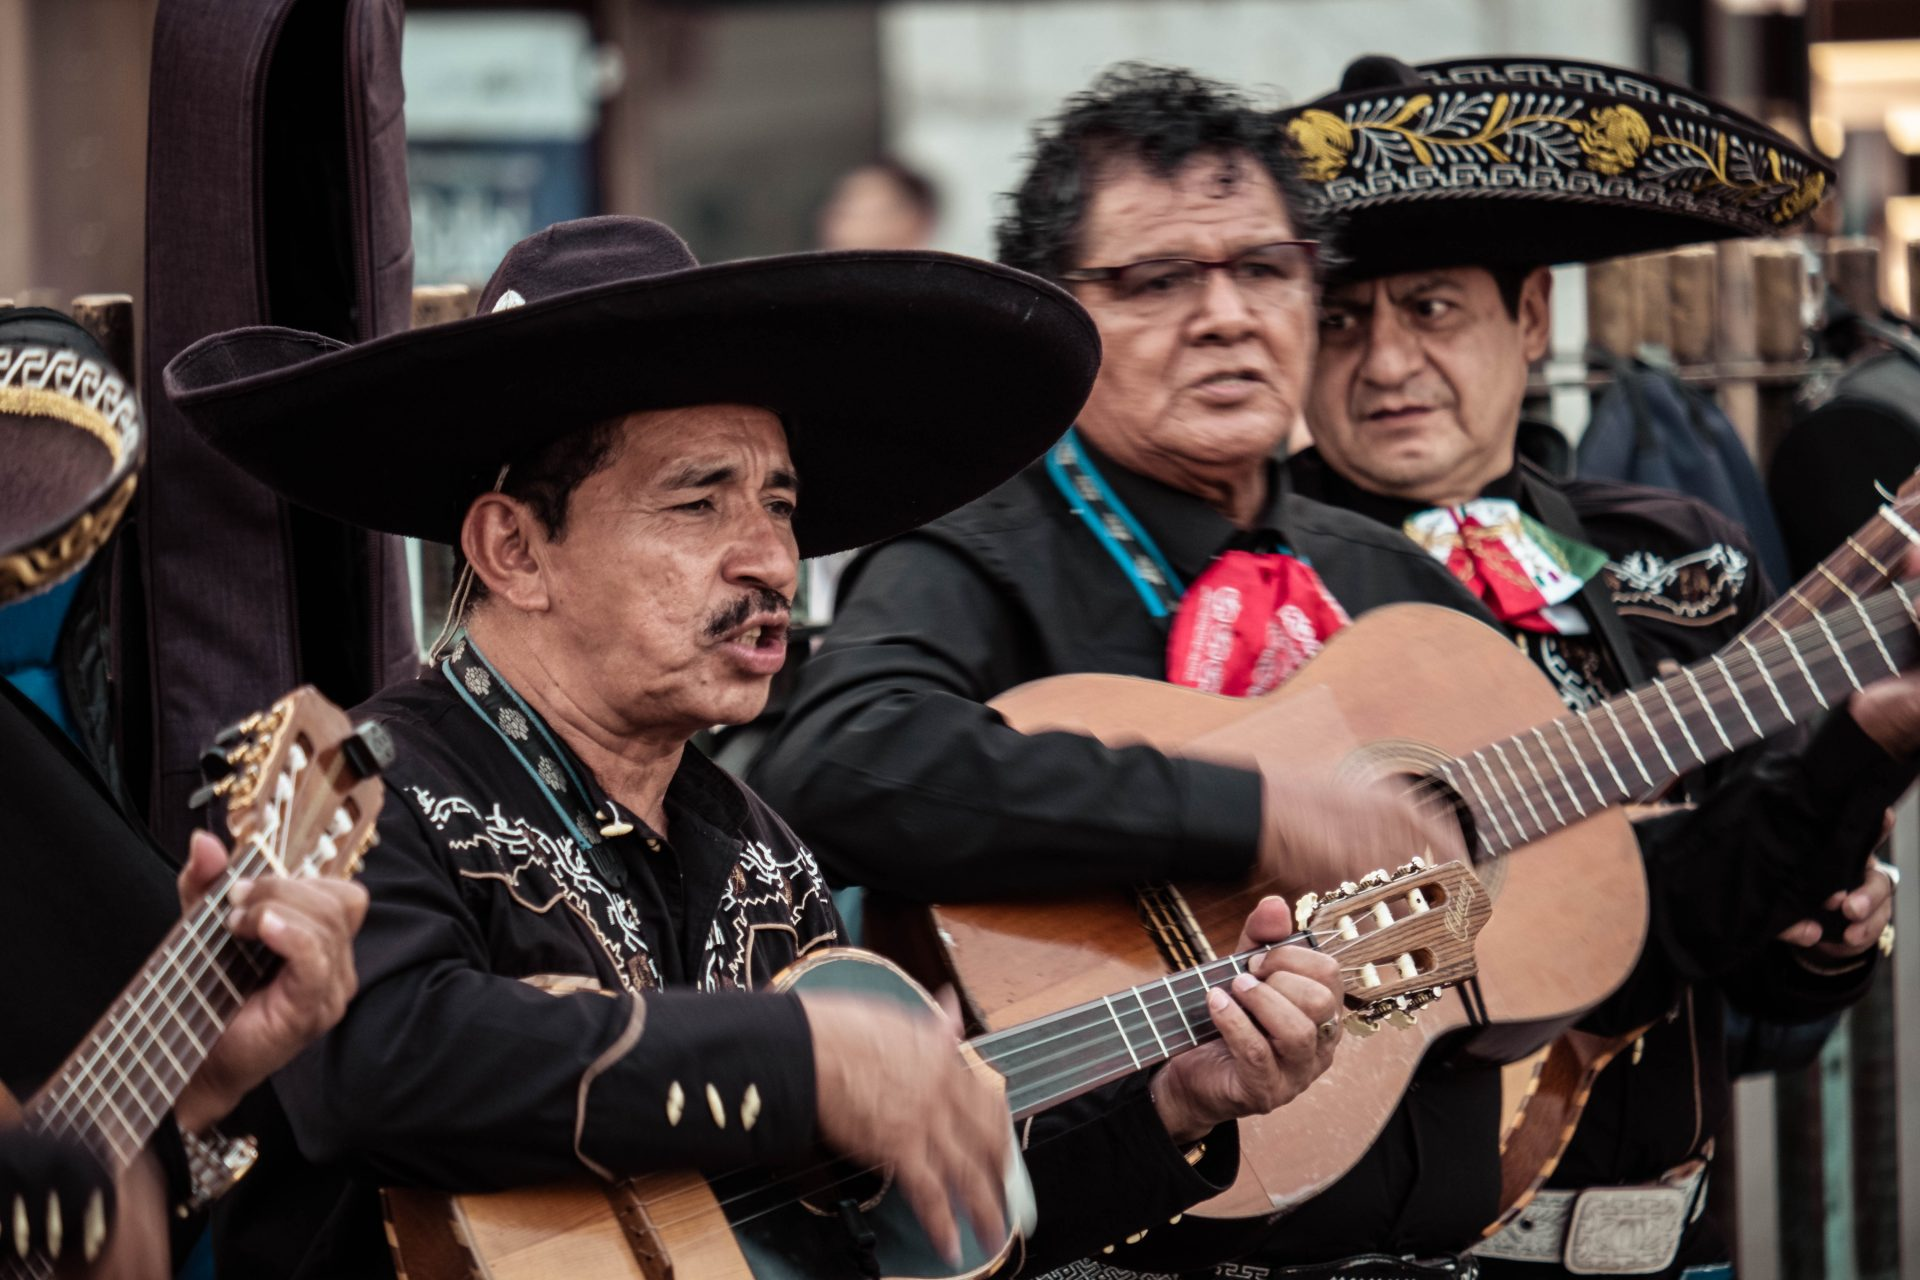 Band dressed in a mexican outfit playing music in the streets of Madrid photo by Jo Kassis